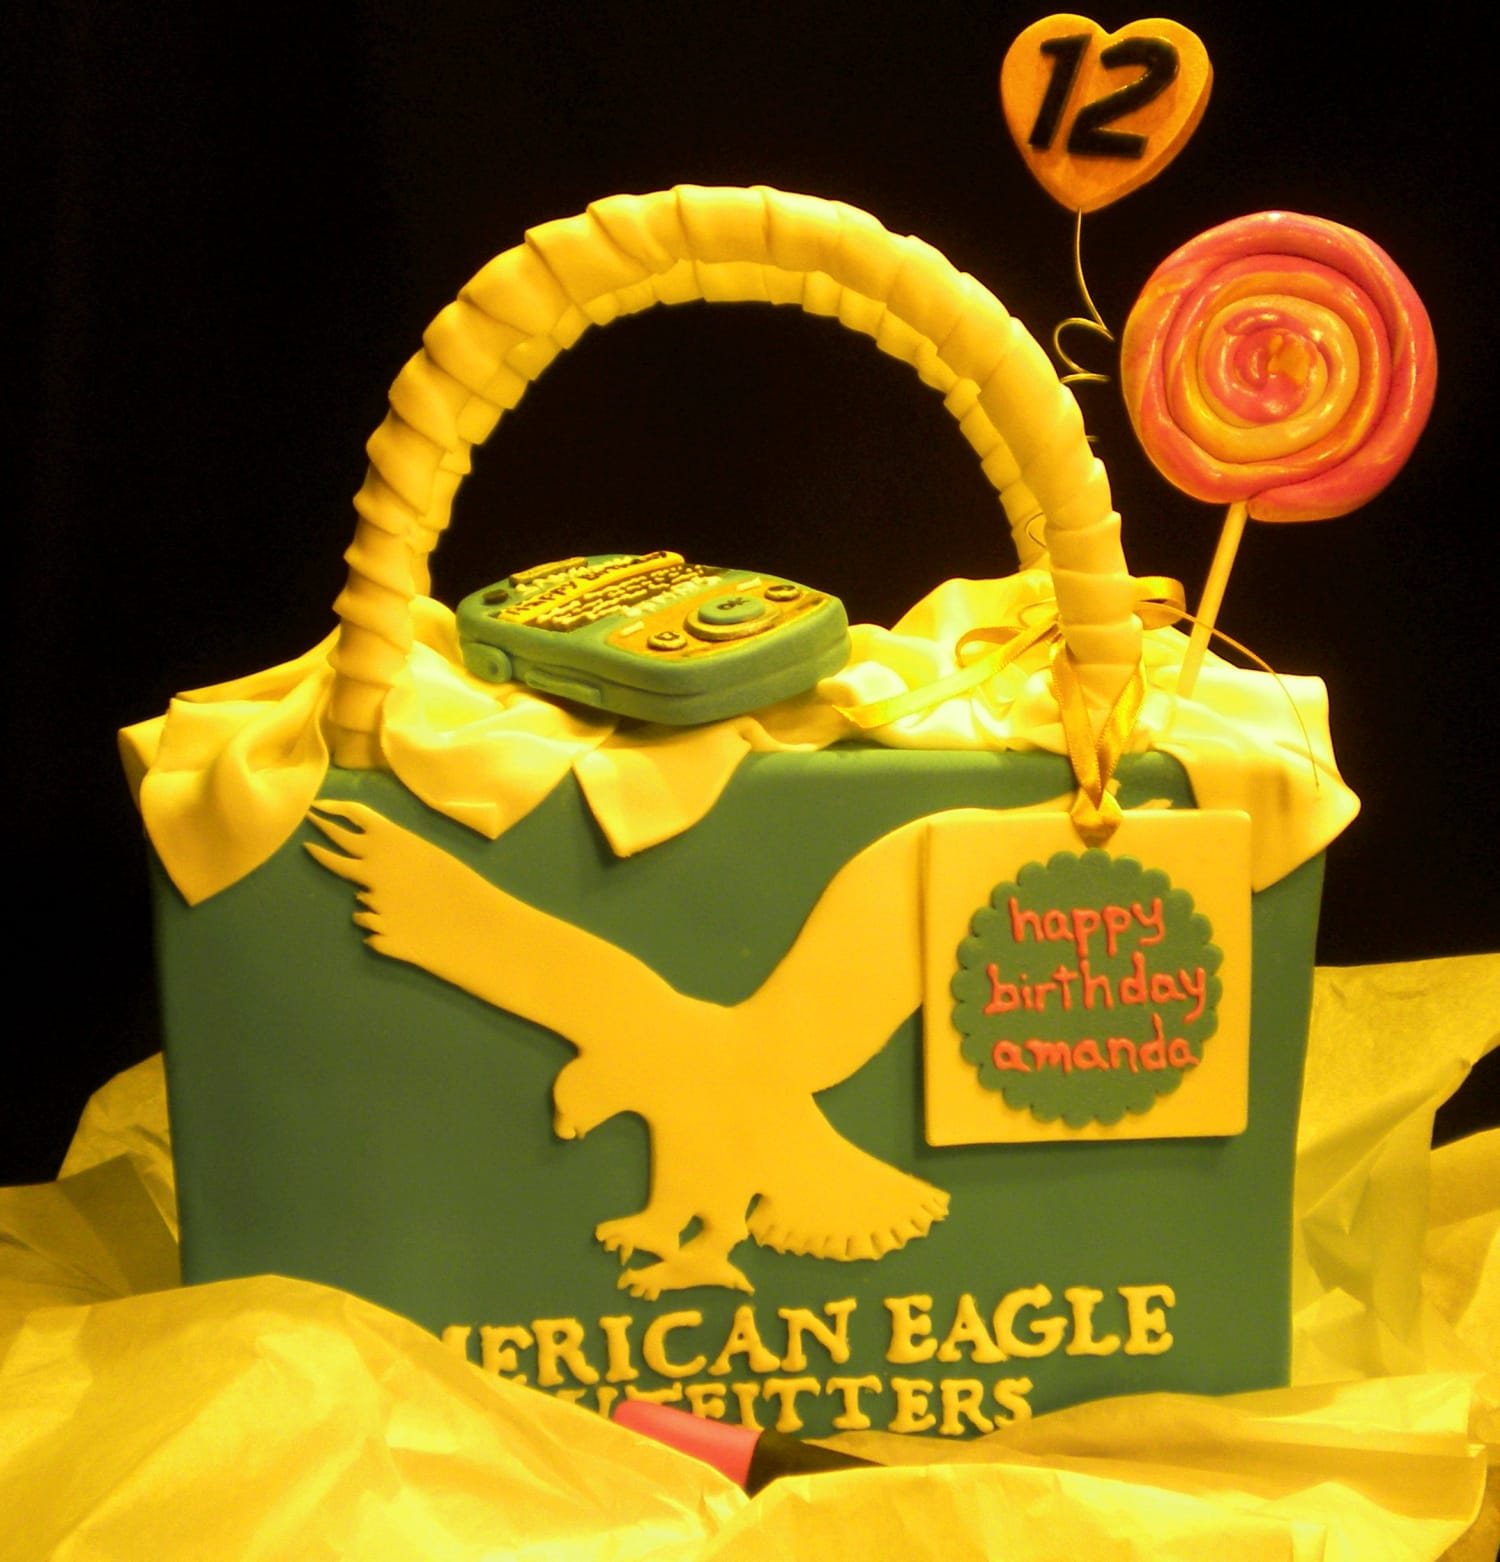 American Eagle Shopping Bag Cake